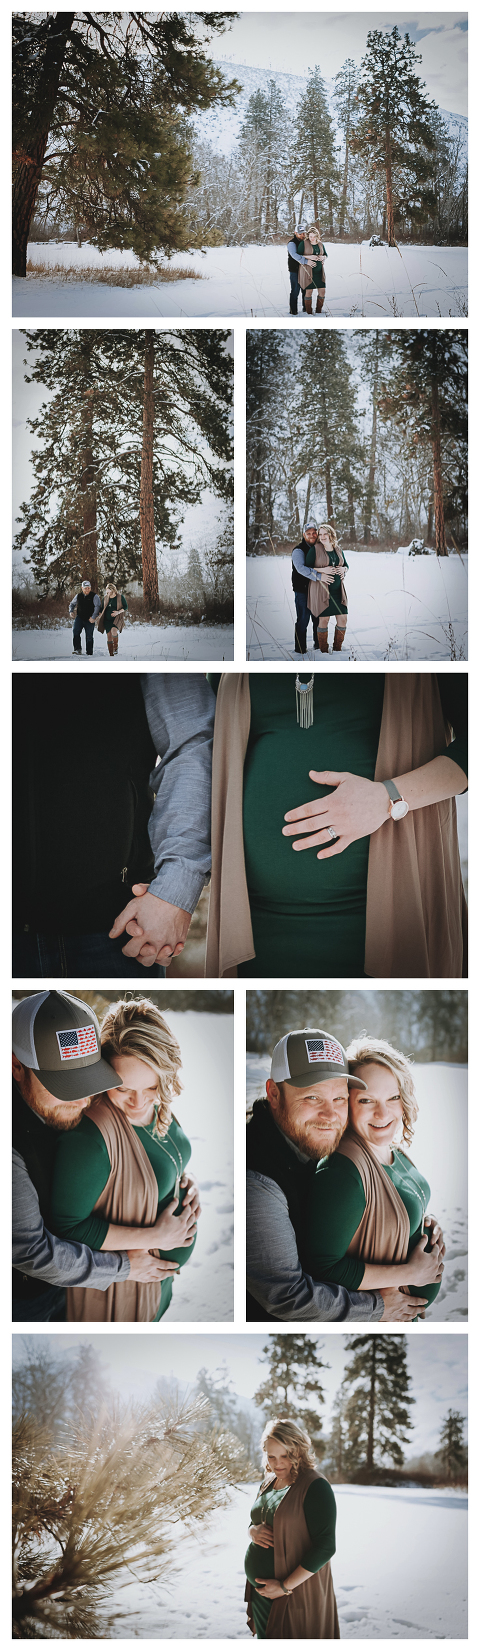 Baby Ripken-lifestyle newborn photography by Hailey Haberman in Ellensburg WA